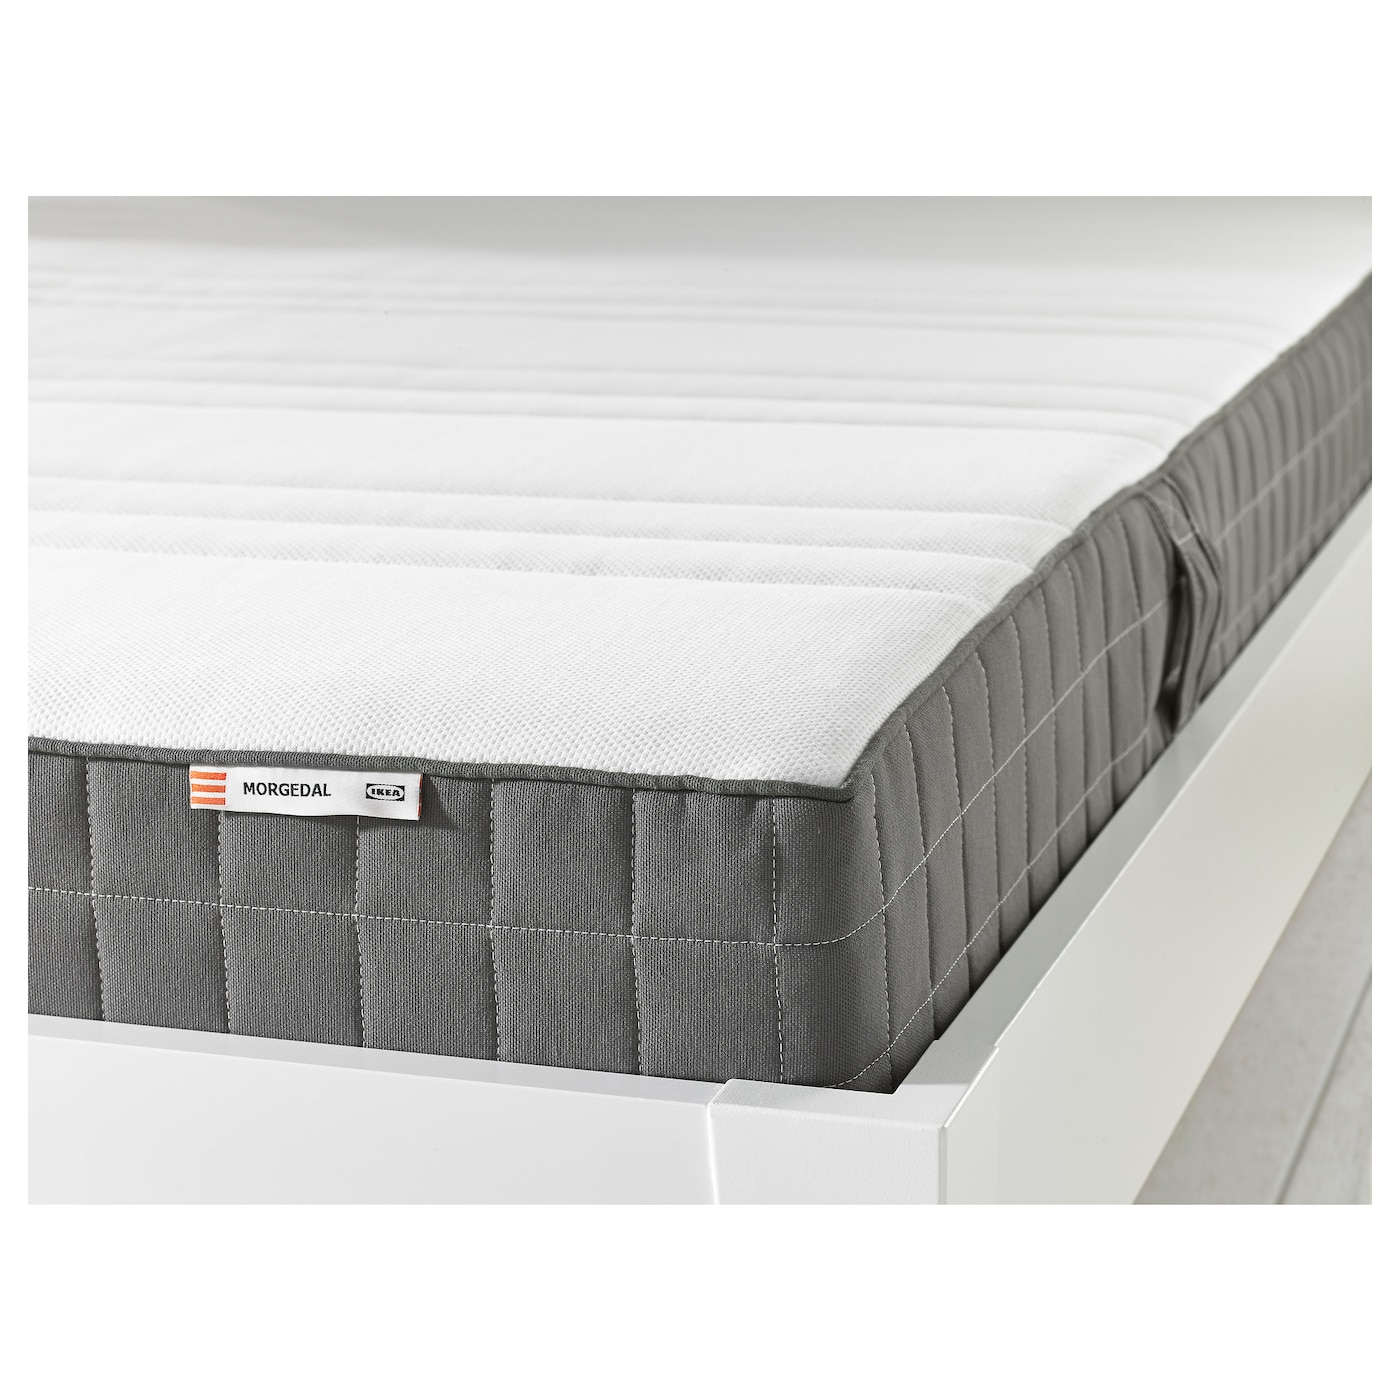 IKEA MORGEDAL foam mattress A generous layer of soft fillings adds support and comfort.